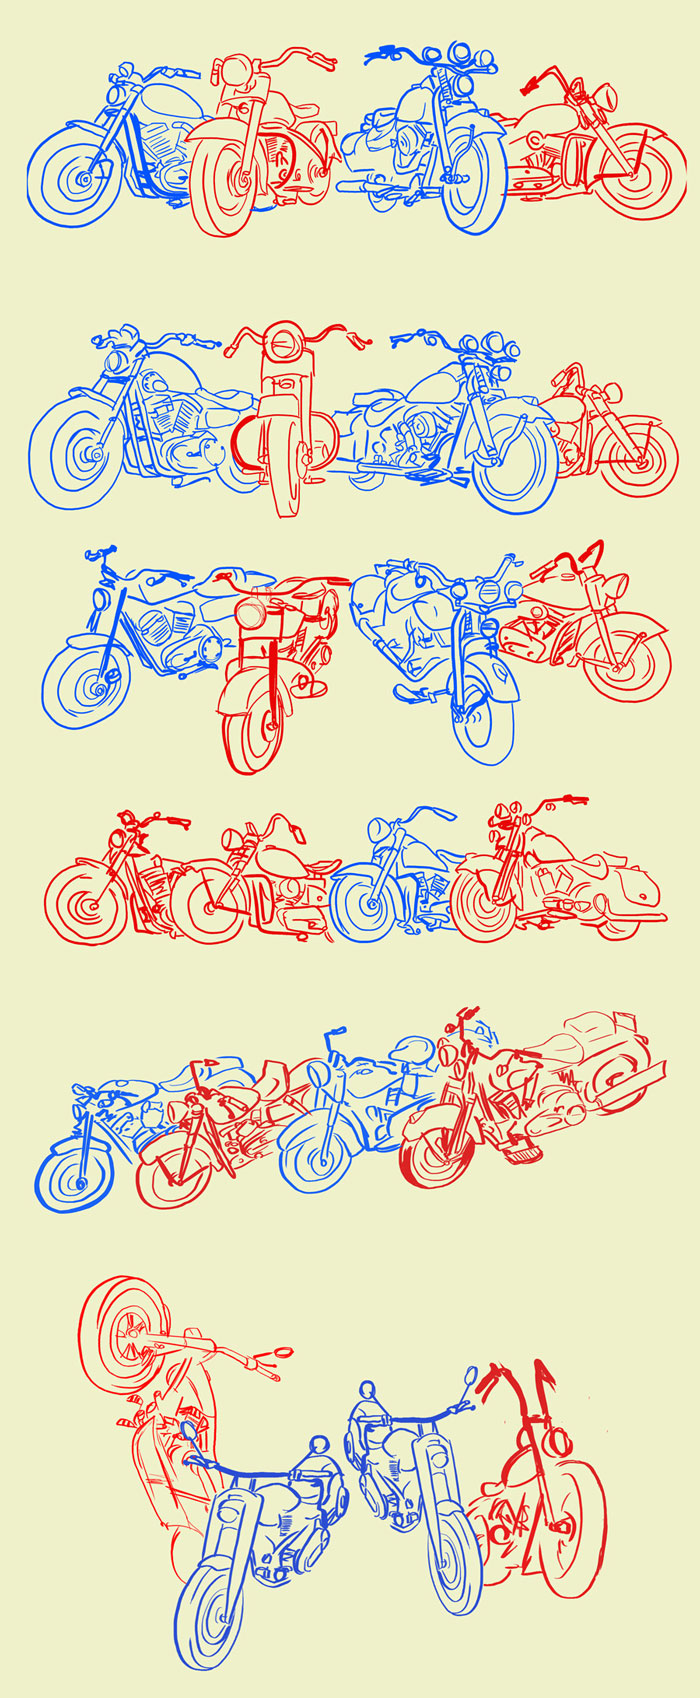 bike_group_sketches4web.jpg